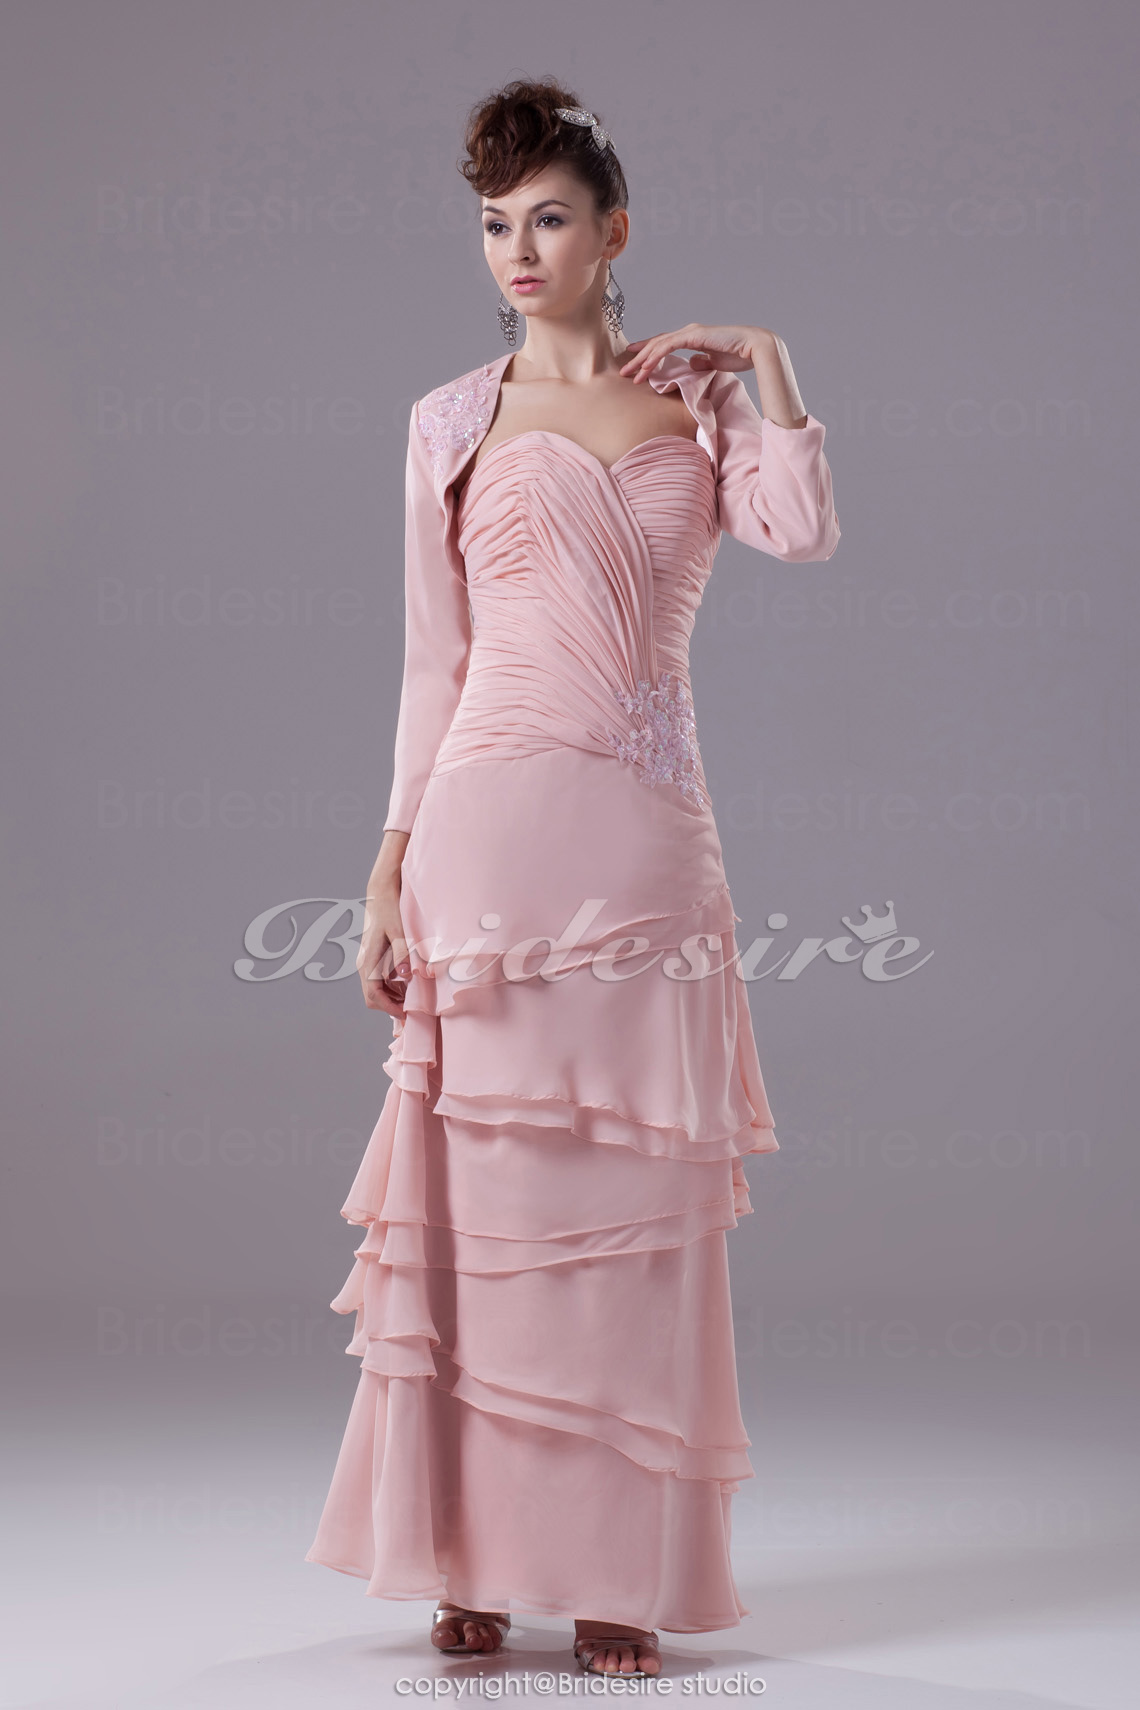 A-line Sweetheart Floor-length 3/4 Length Sleeve Chiffon Dress